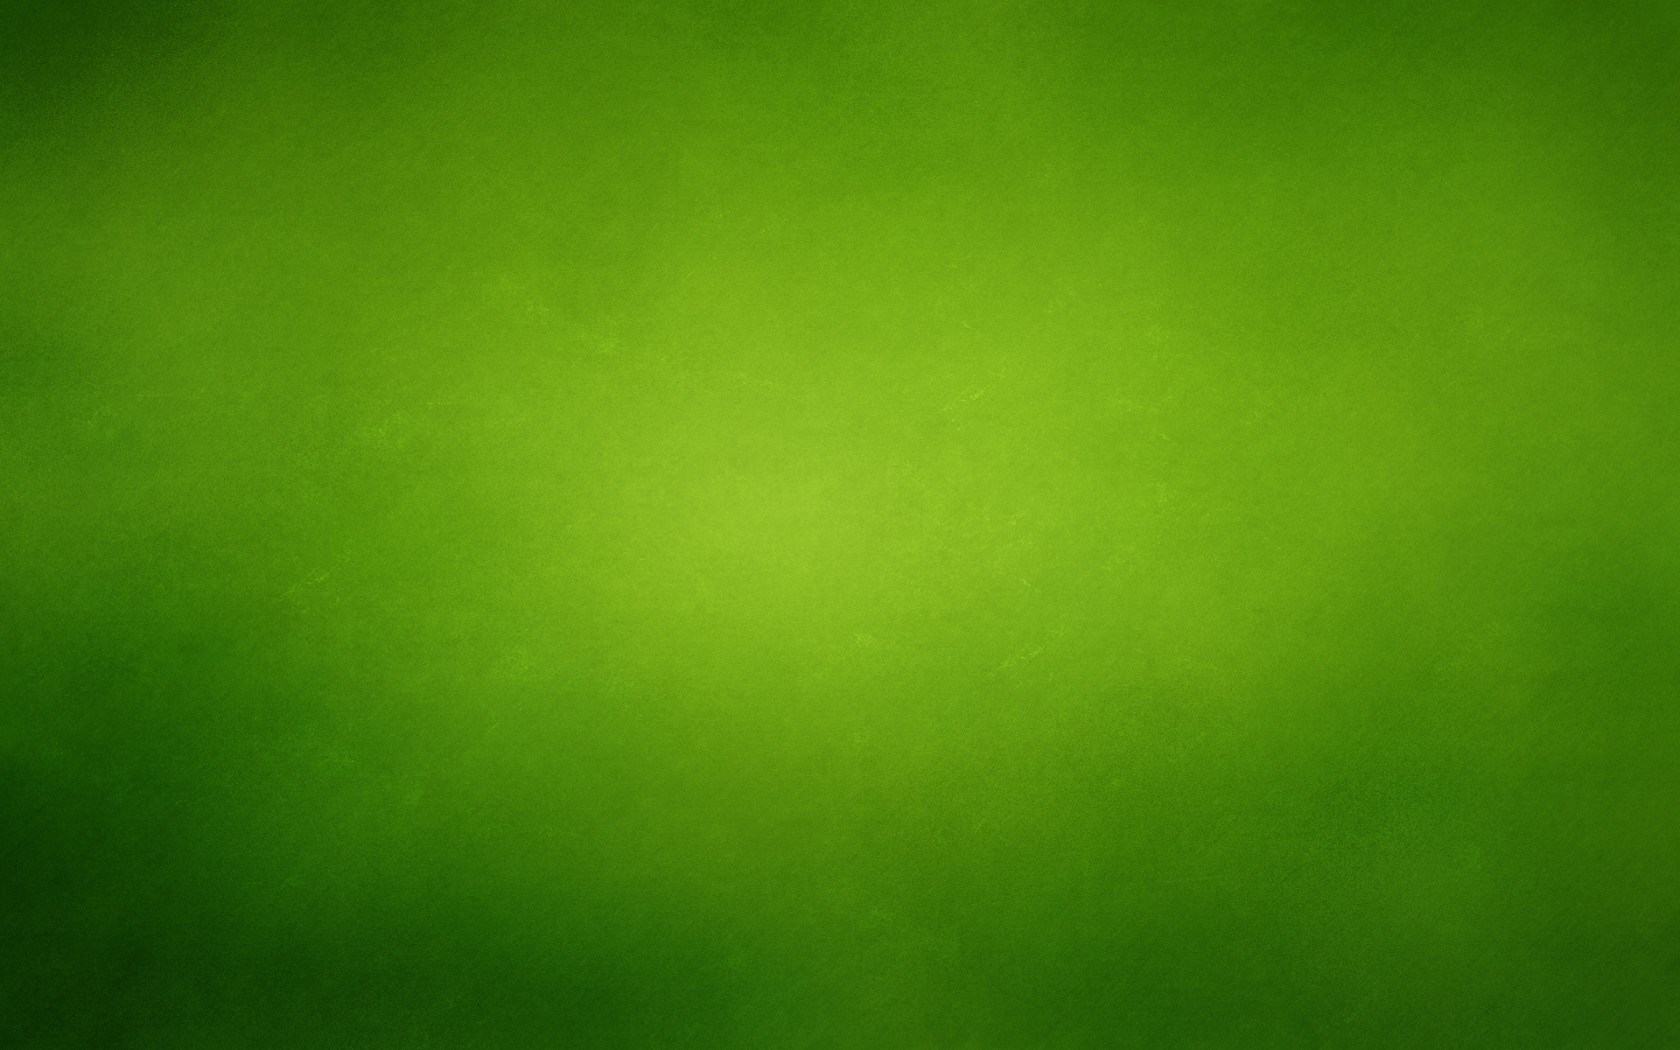 green wallpaper Evergreen Construction Solutions 8425 Old Statesville Rd #8, Charlotte, NC 28269 (704) 609-3561